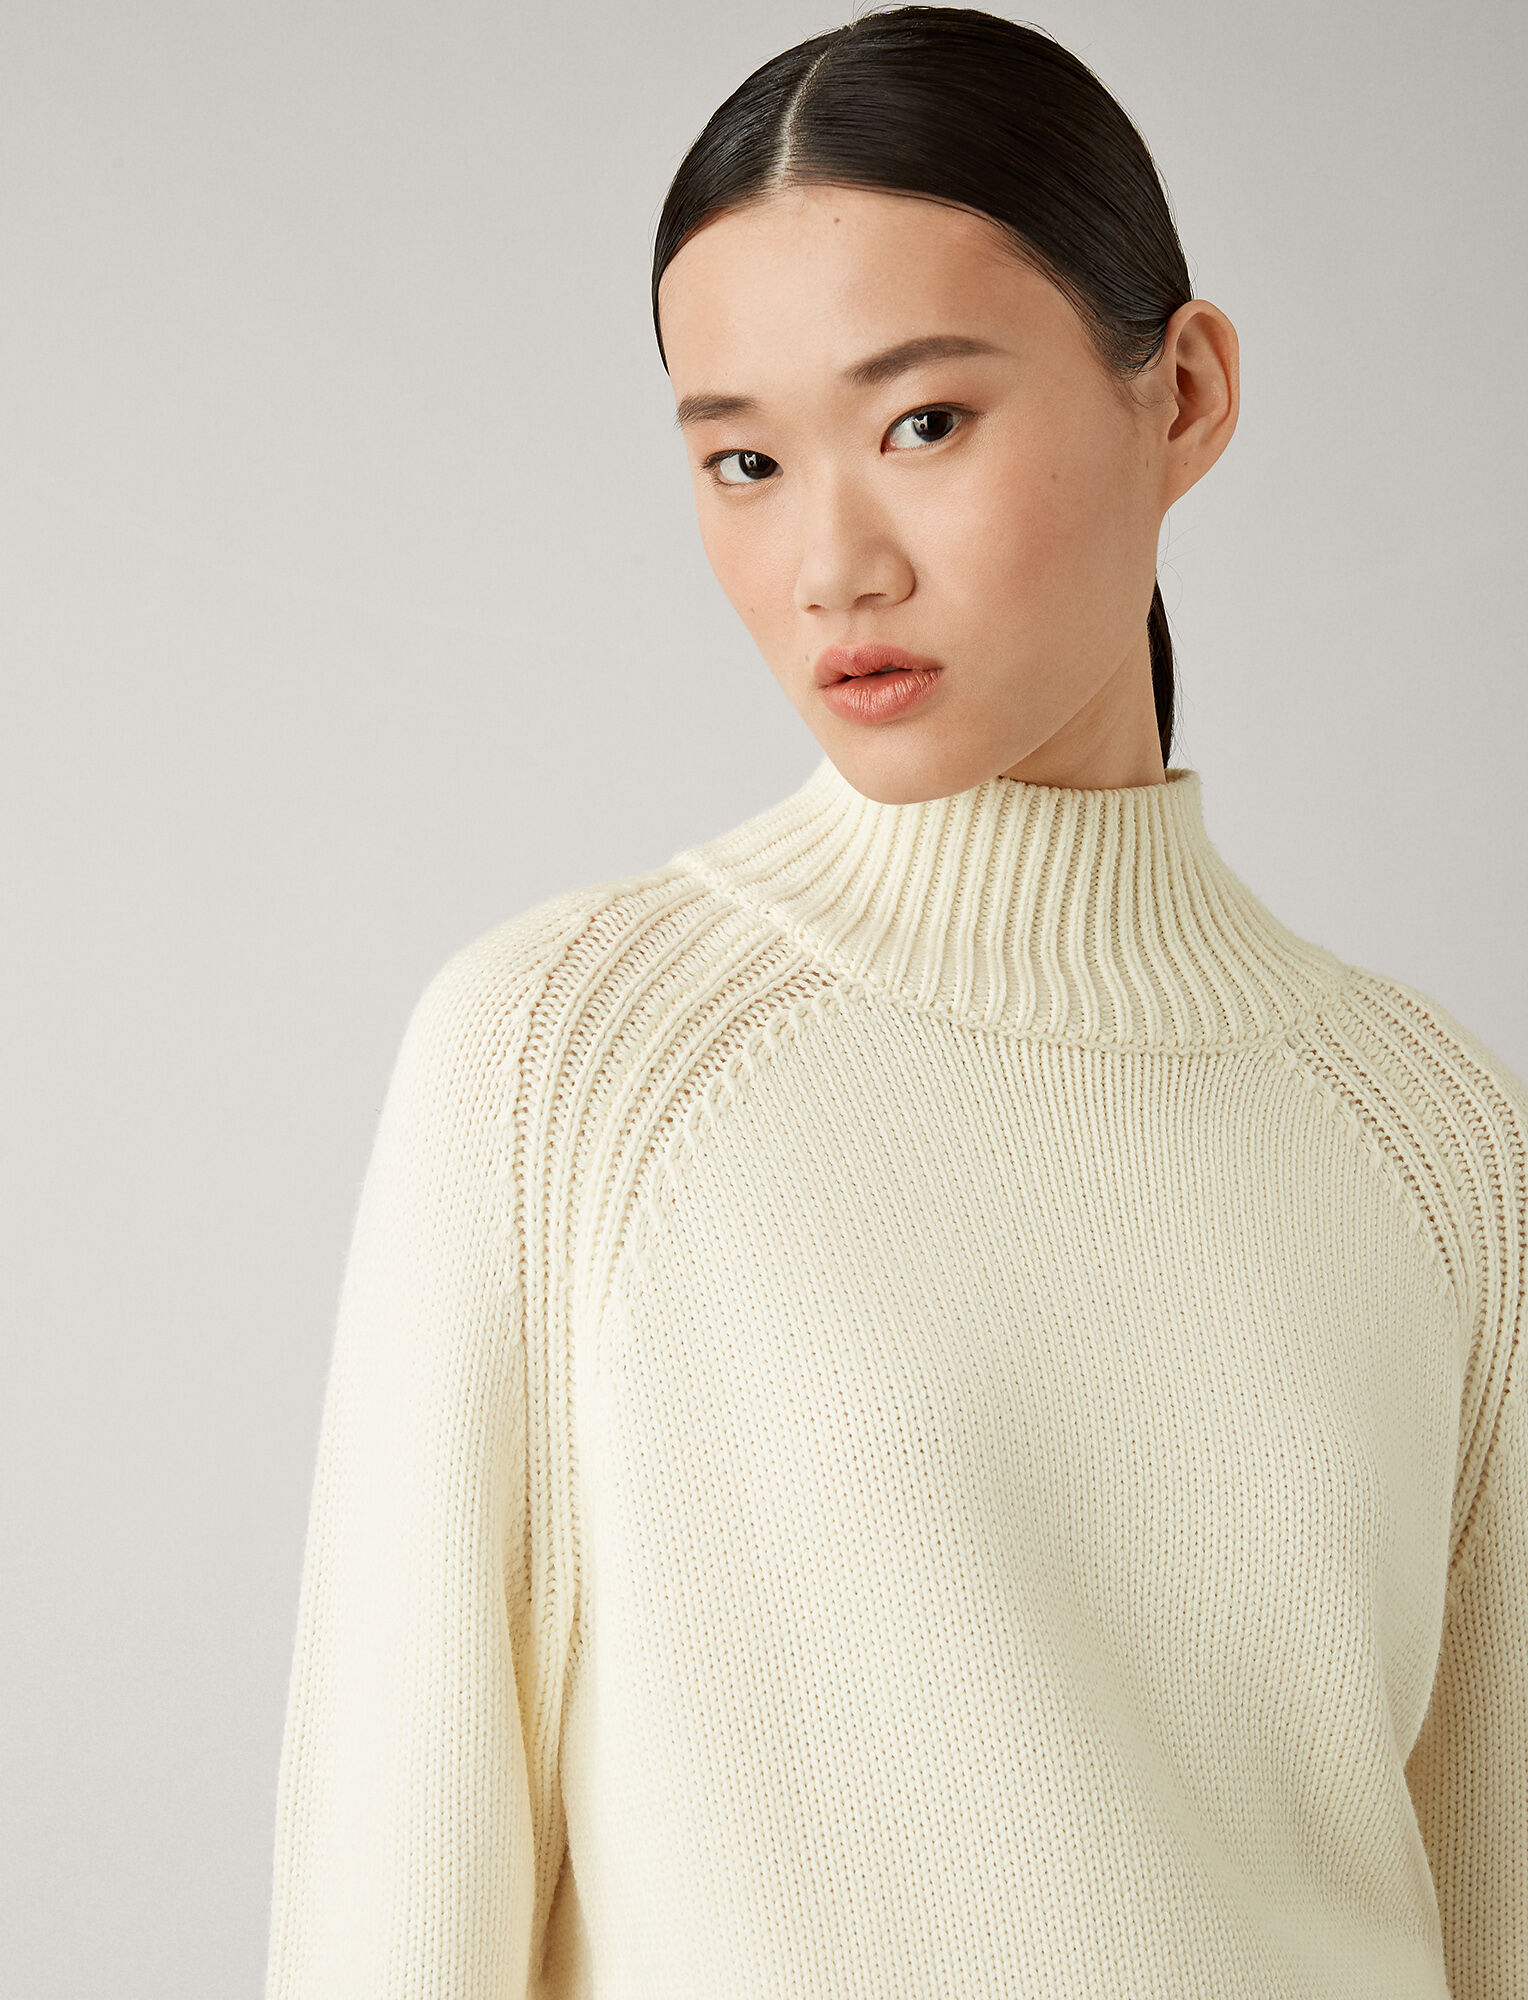 Joseph, New High Neck Sloppy Joe Knit, in CREAM